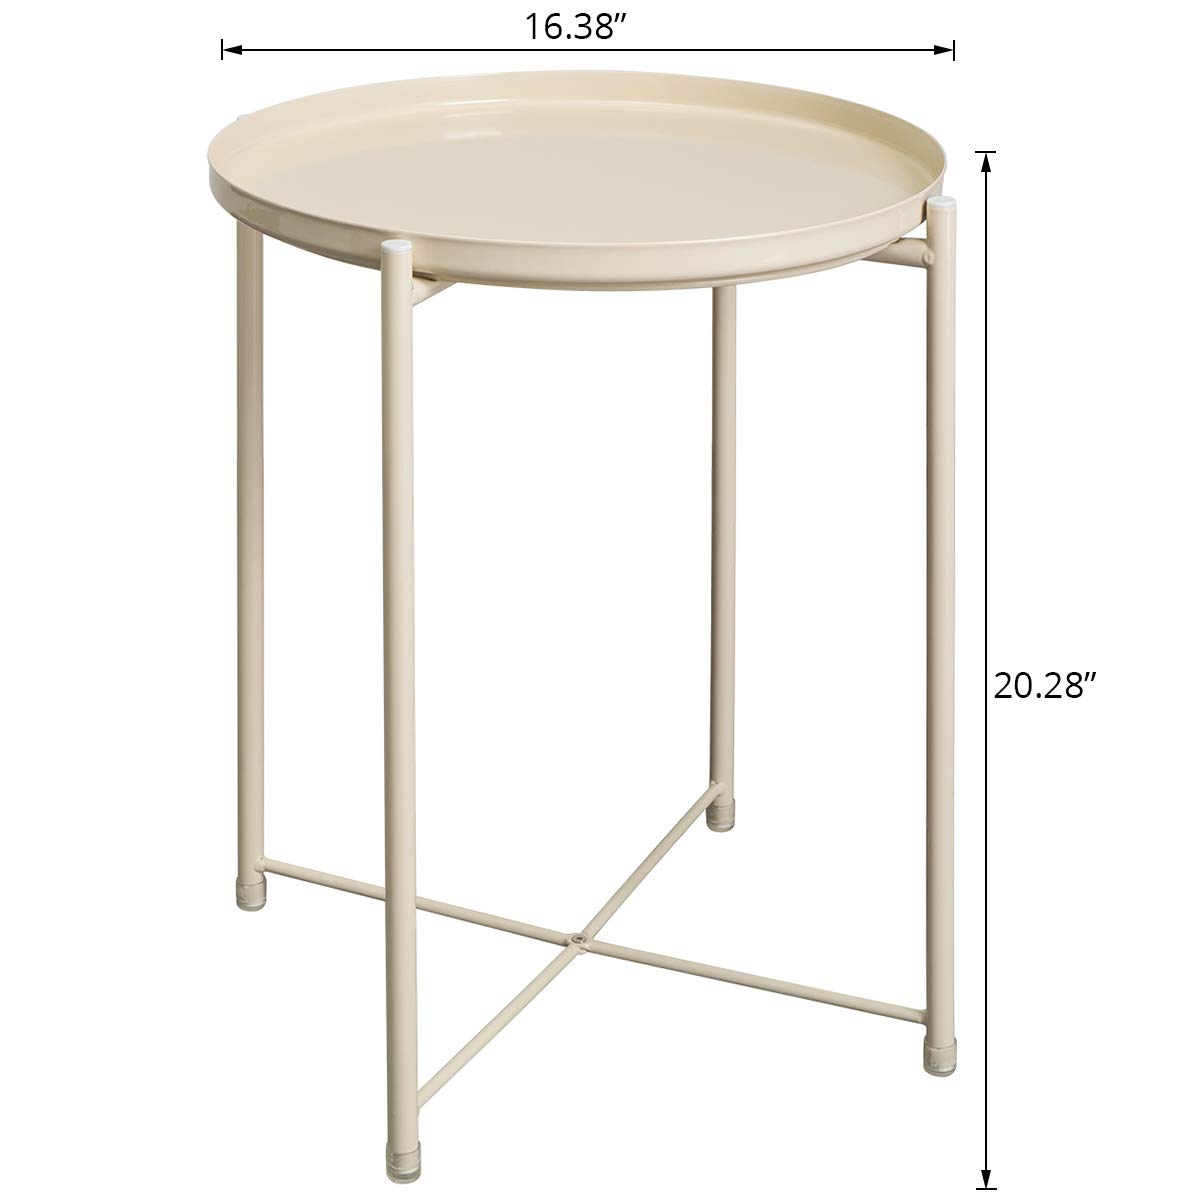 hollyhome folding tray metal end table sofa small bdl accent round side tables anti rust and waterproof outdoor indoor snack coffee french chairs inch console target white lamp